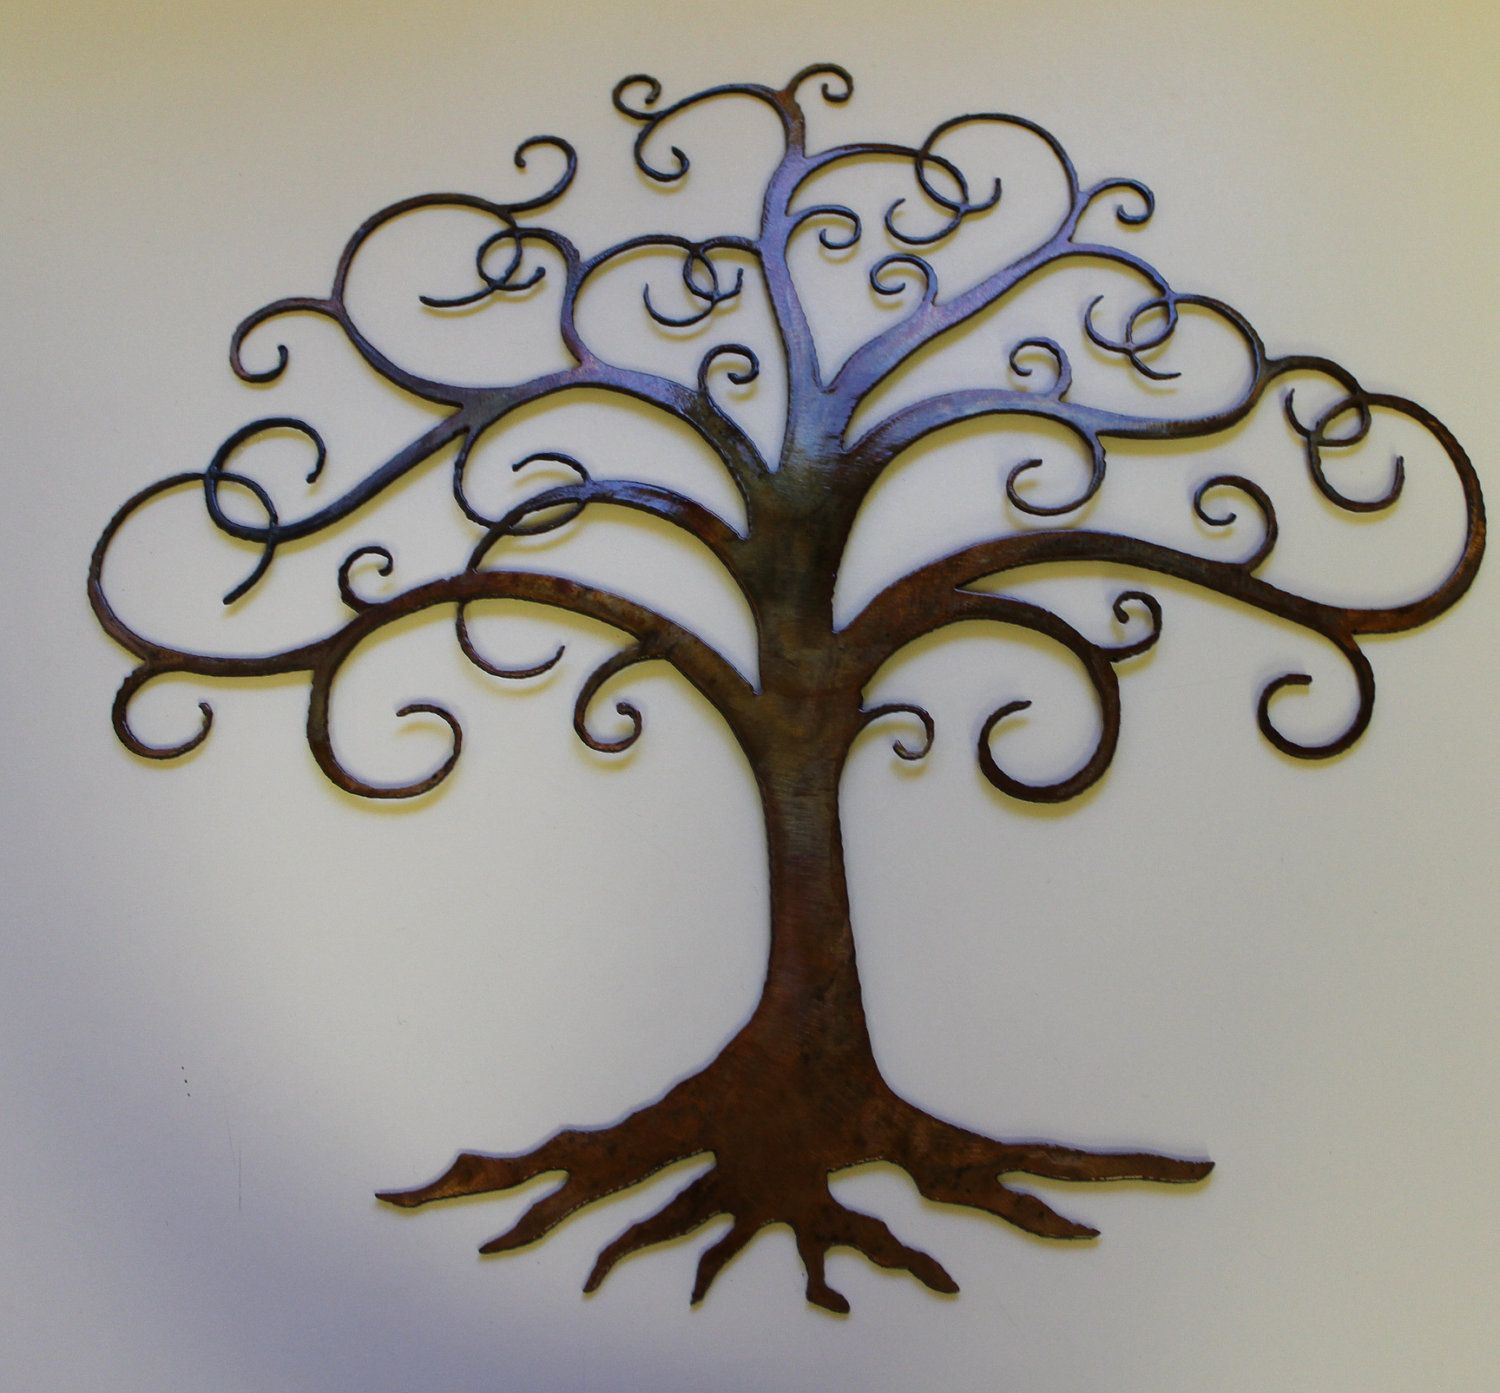 tree of life swirled tree of life metal wall art decor by heavensgatemetalwork - Metal Tree Wall Decor